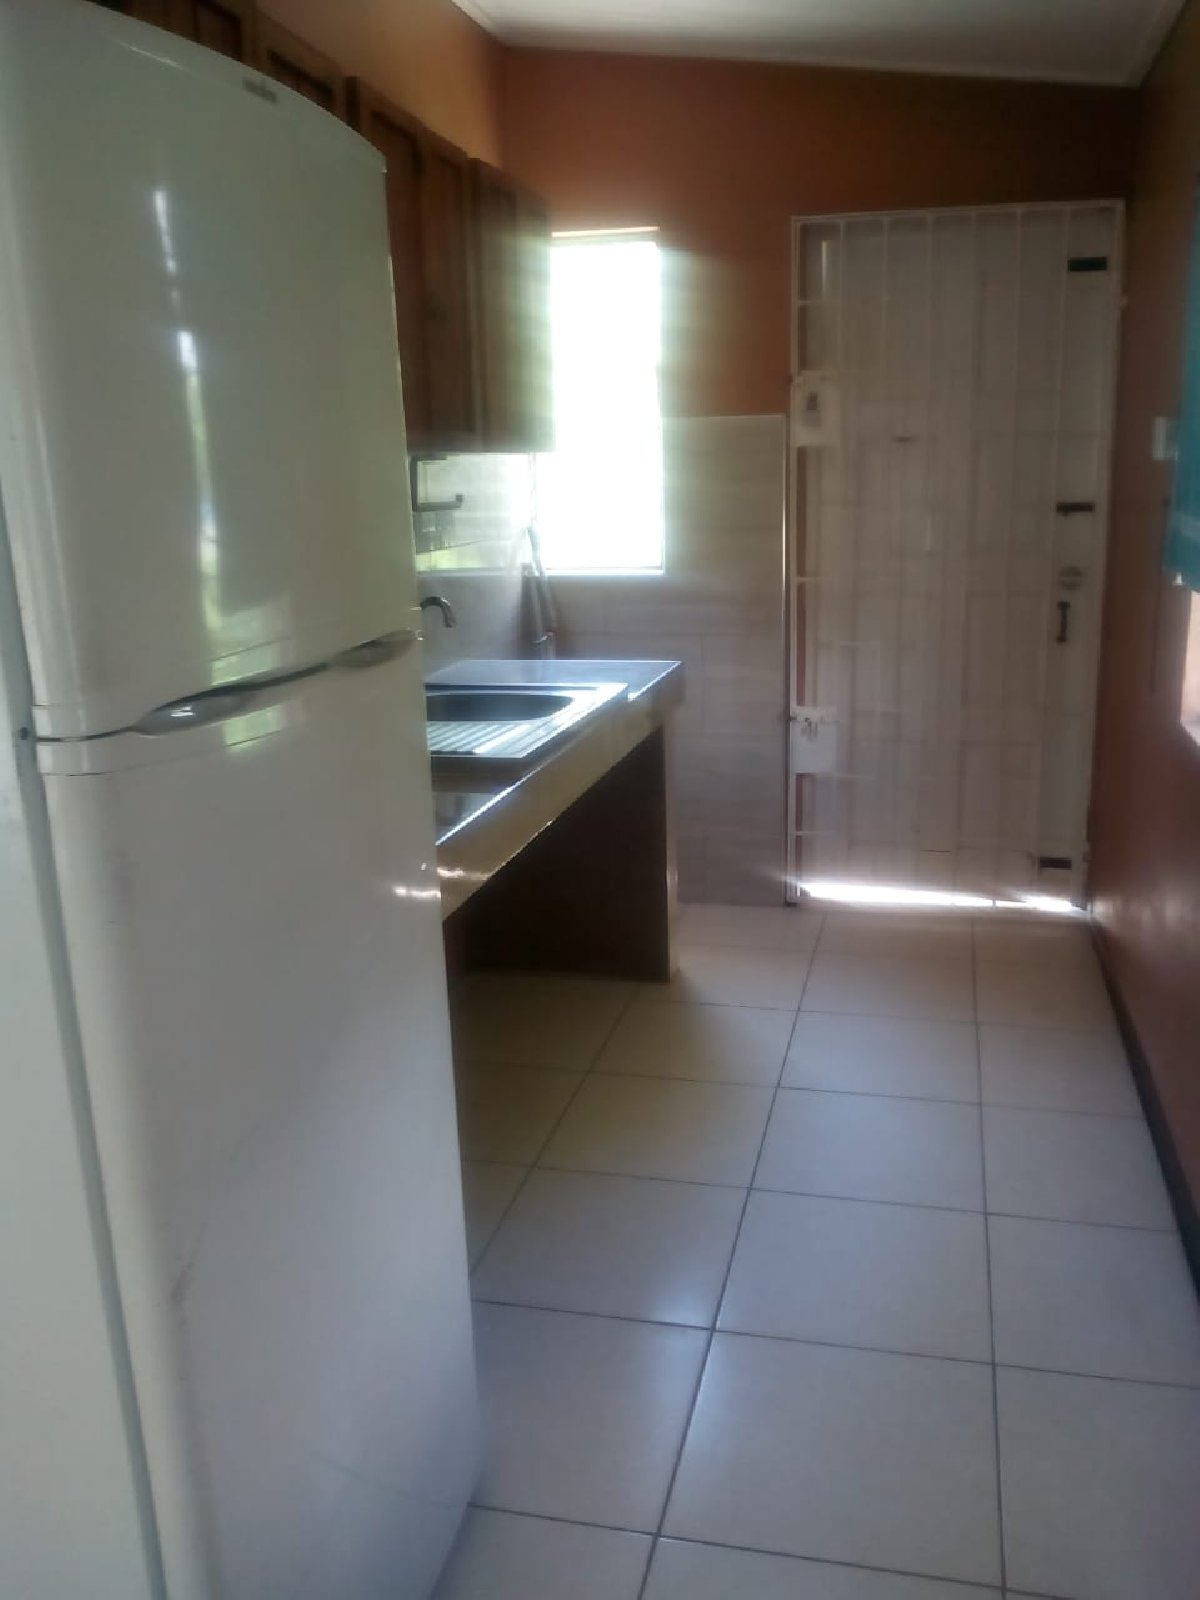 3 Bedroom 1 Bathroom Self Contained House For Rent In